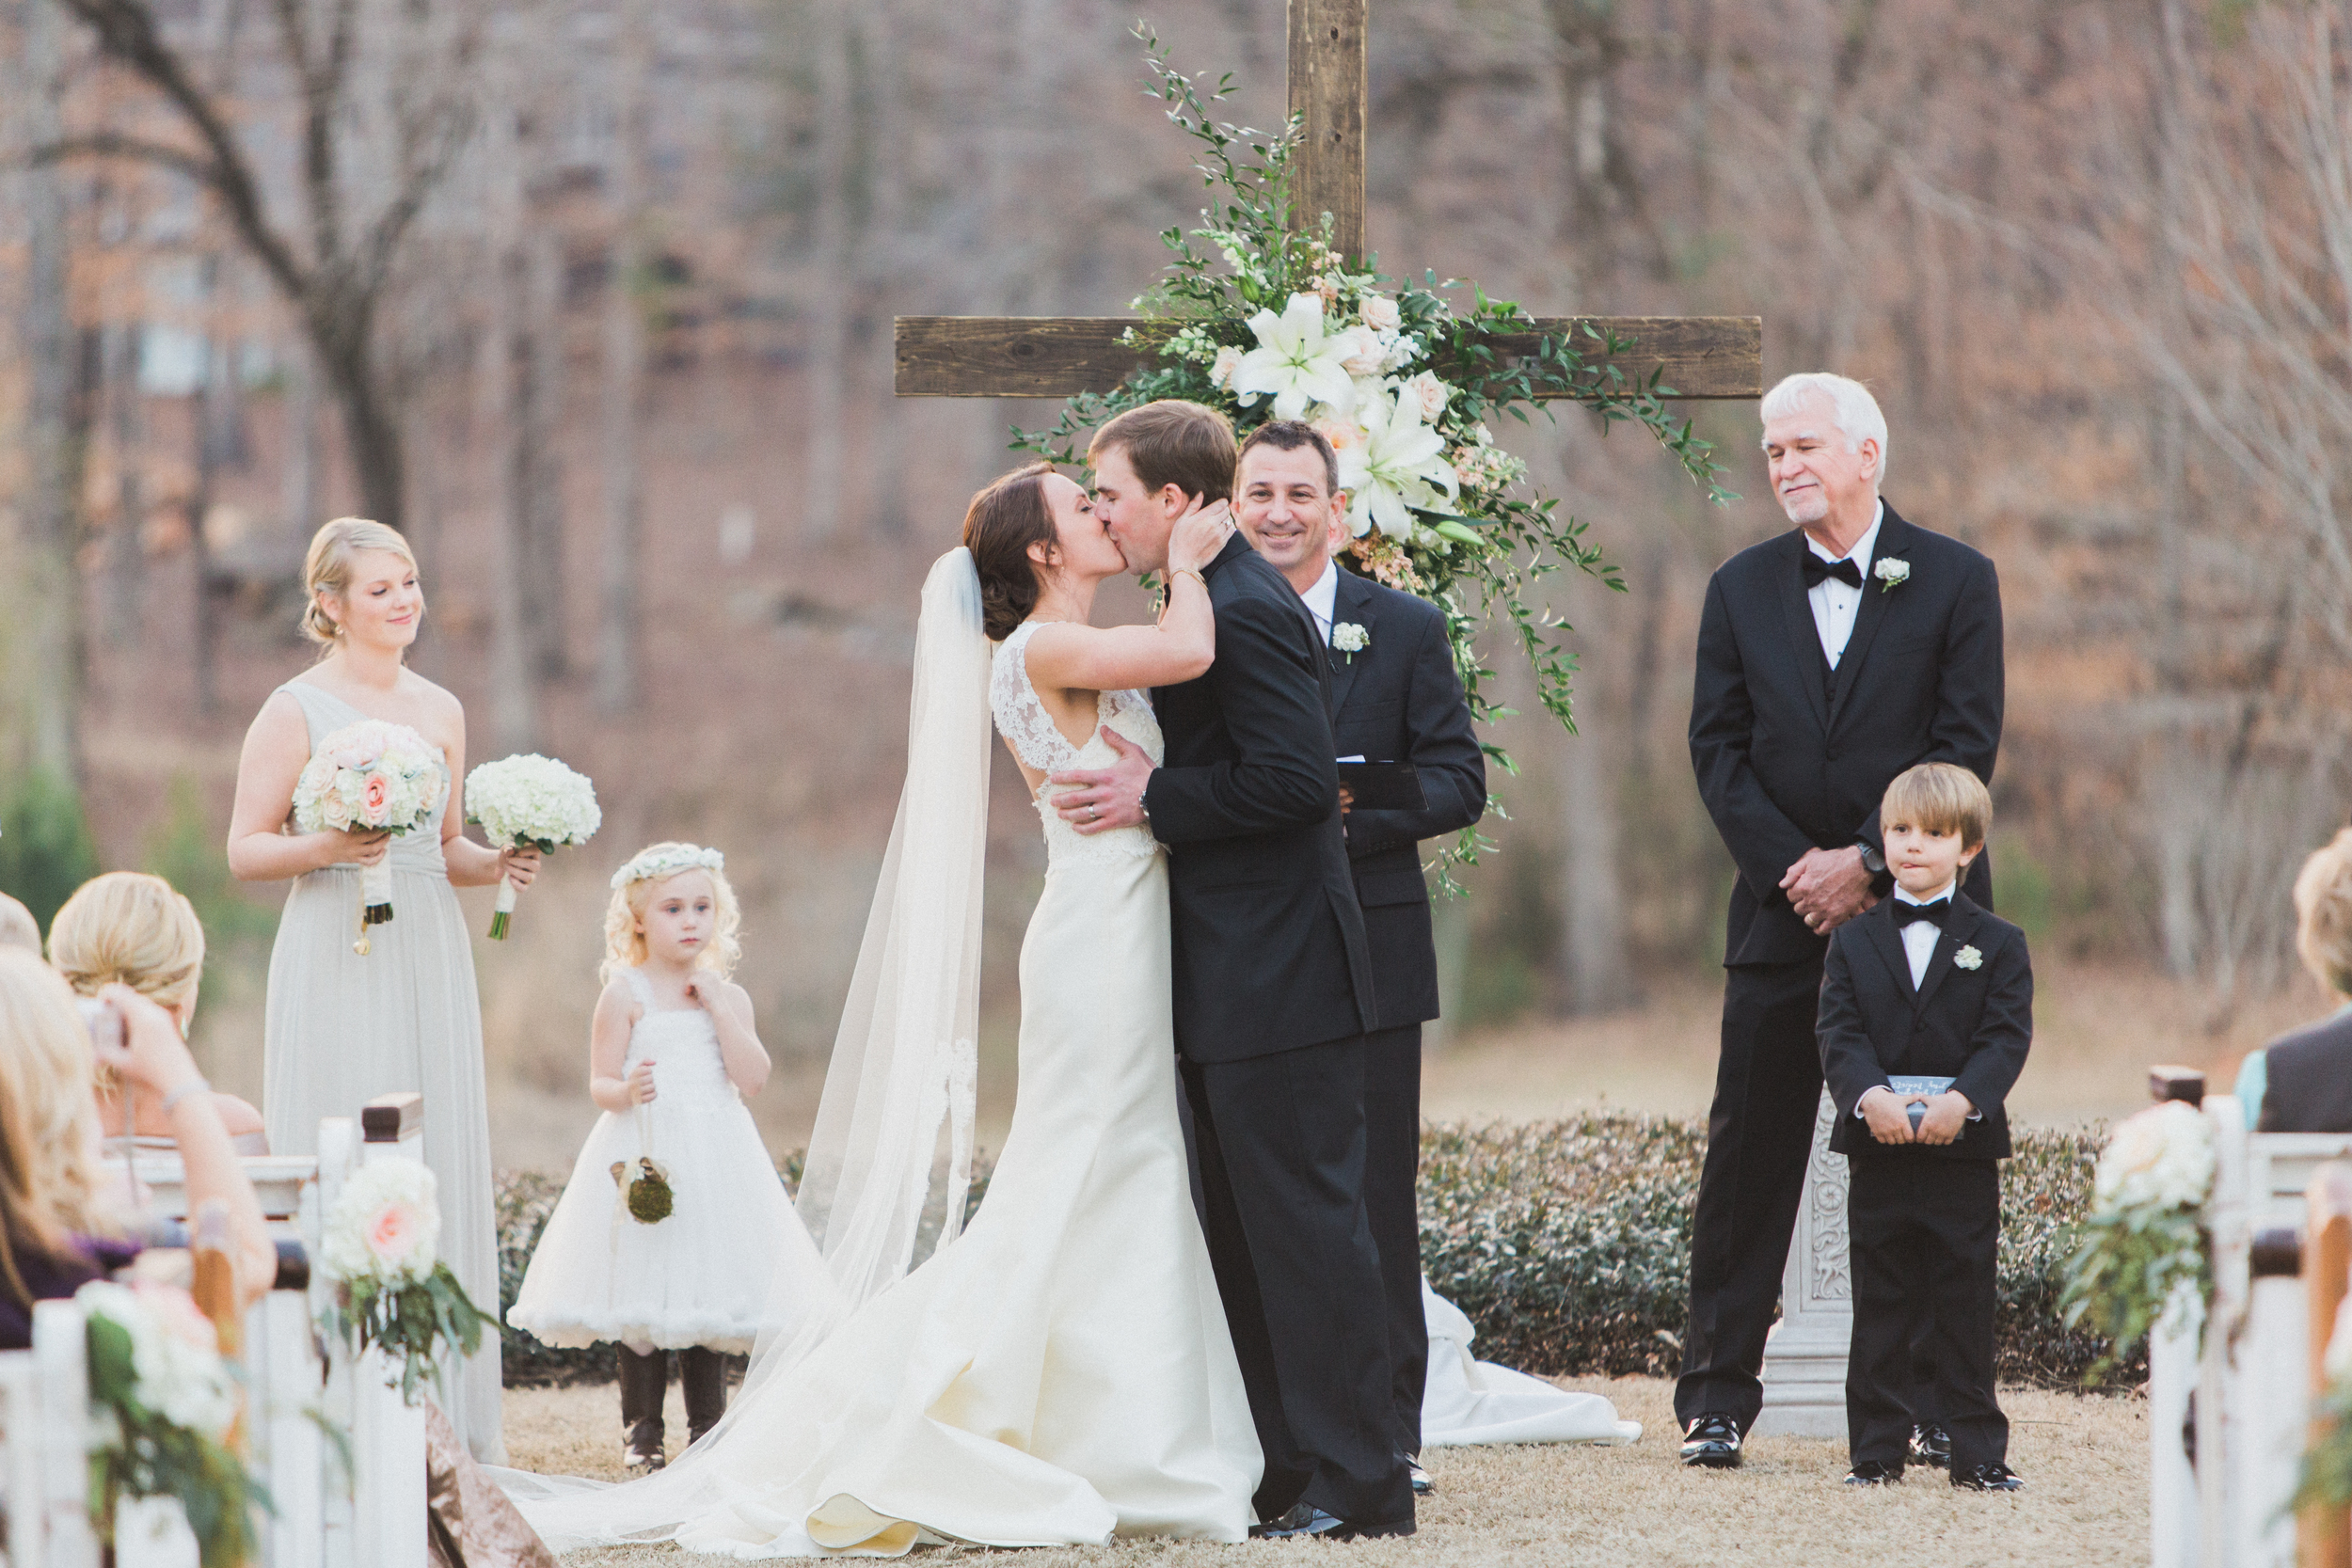 Pews at a Southern Wedding. Photography by Taylor Lord Photography